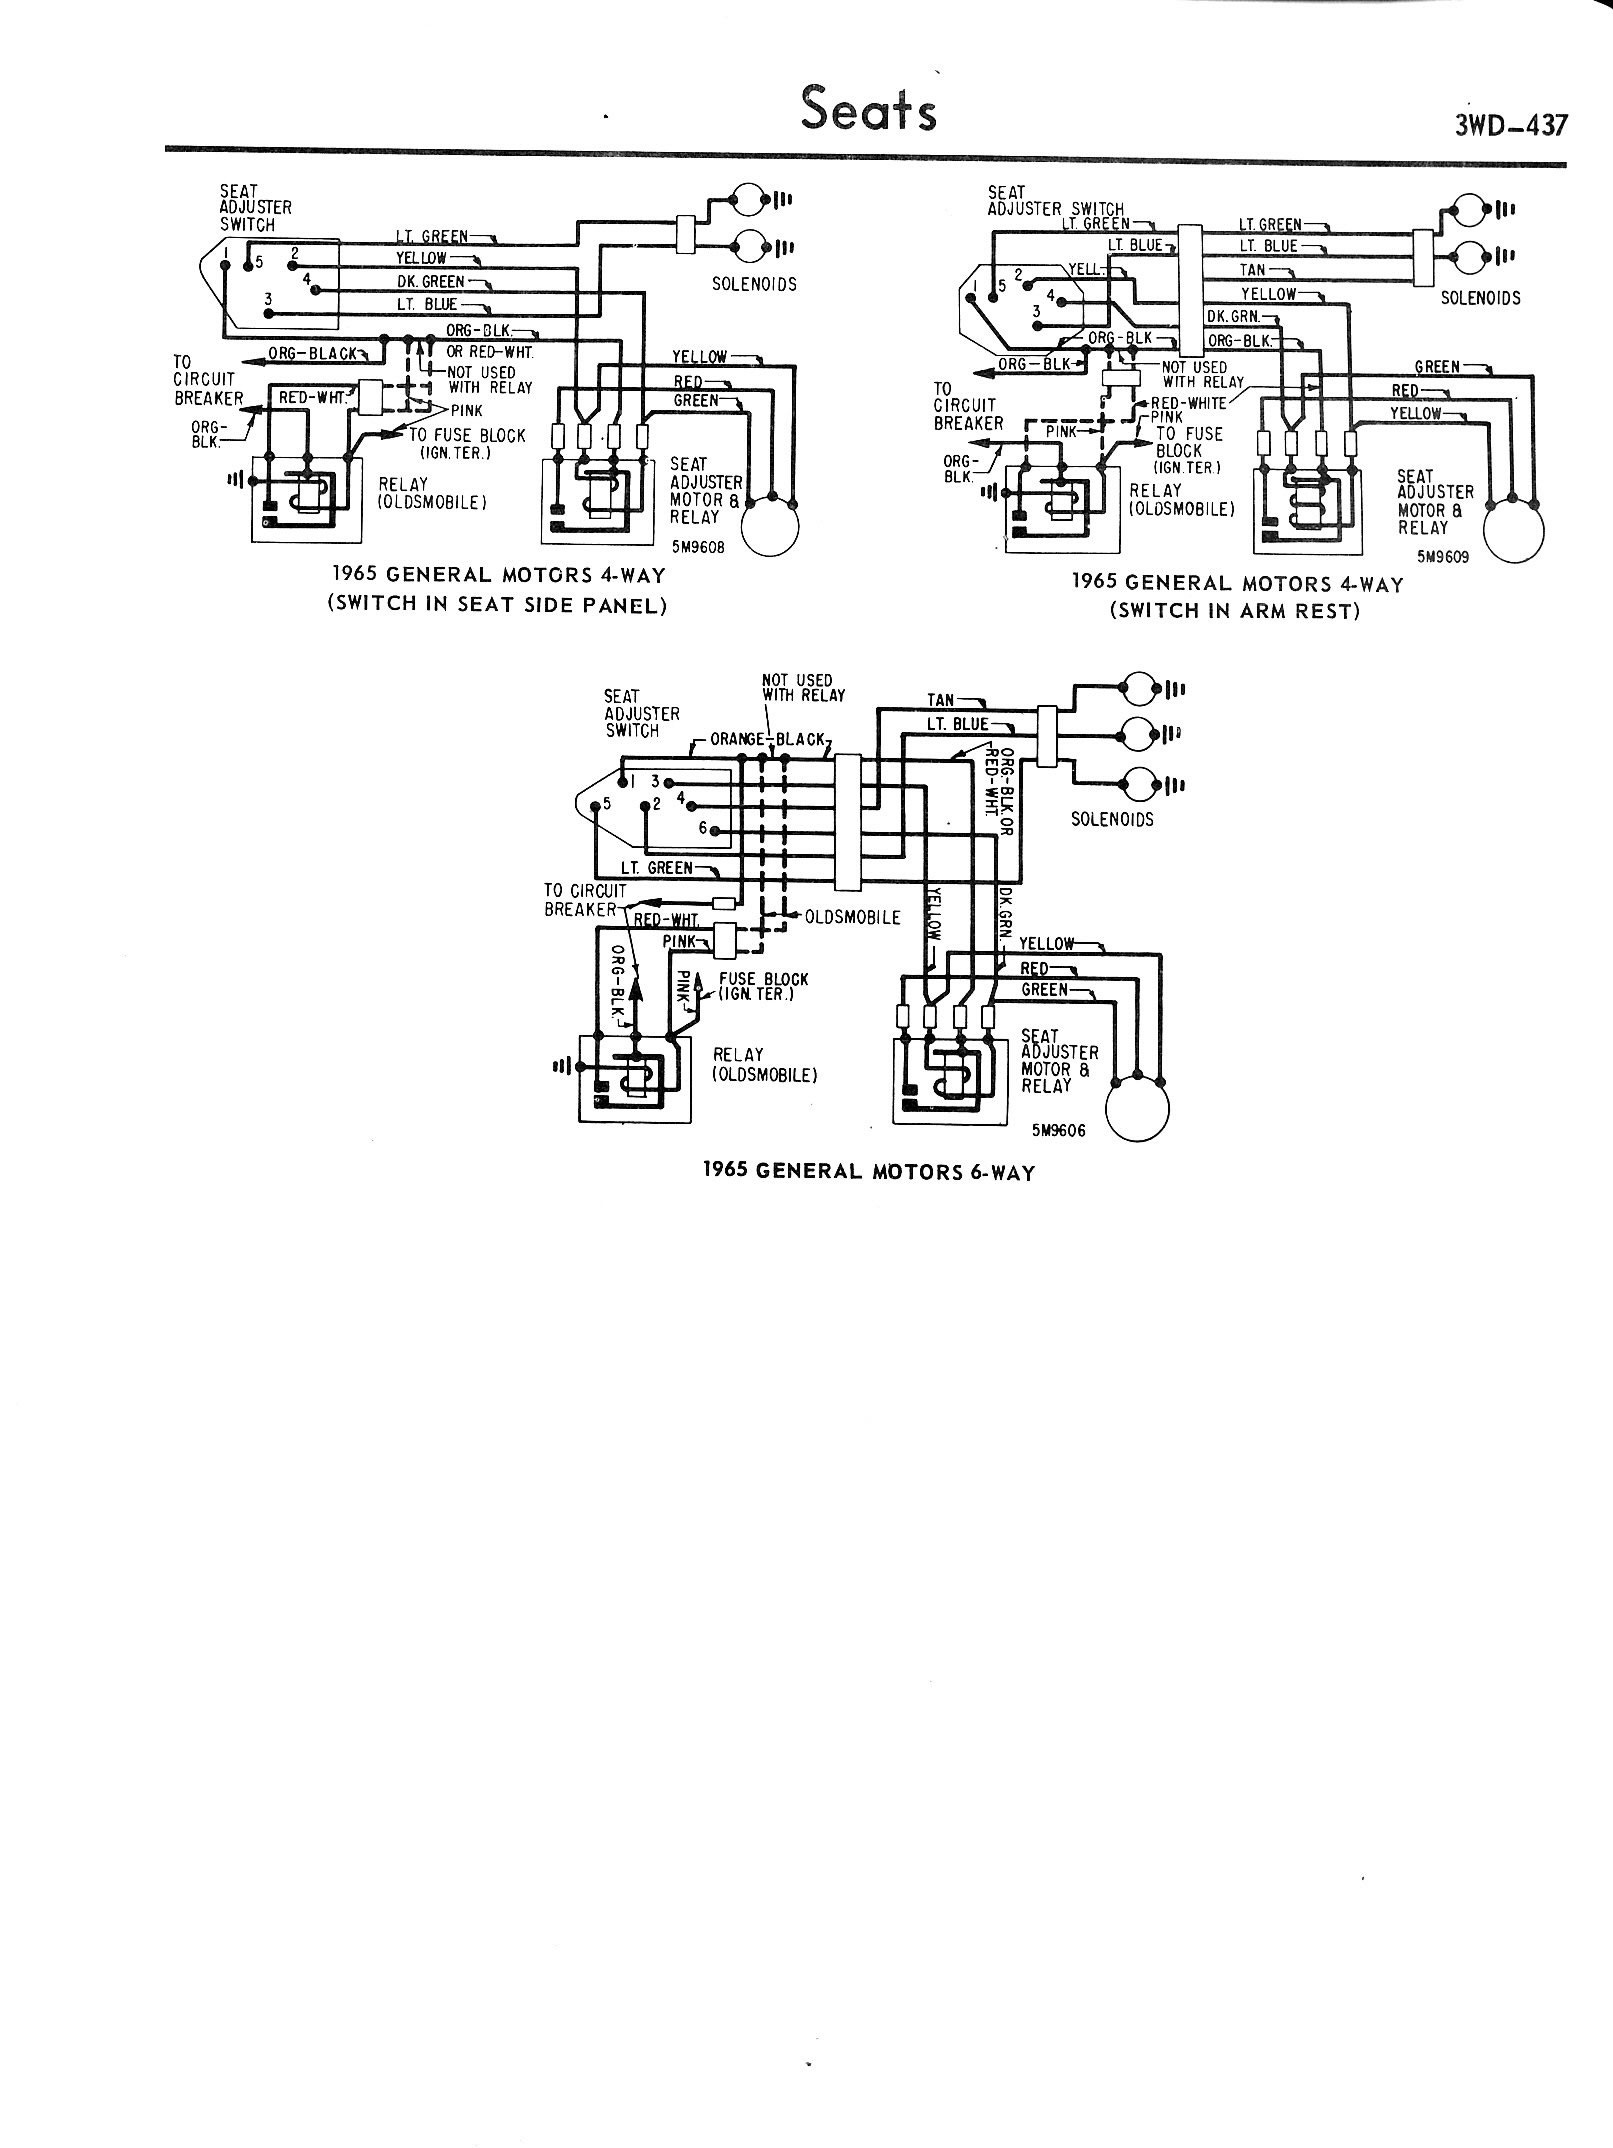 71 chevelle starter wiring diagram cat5 crossover chevy diagrams d 57 64 gm